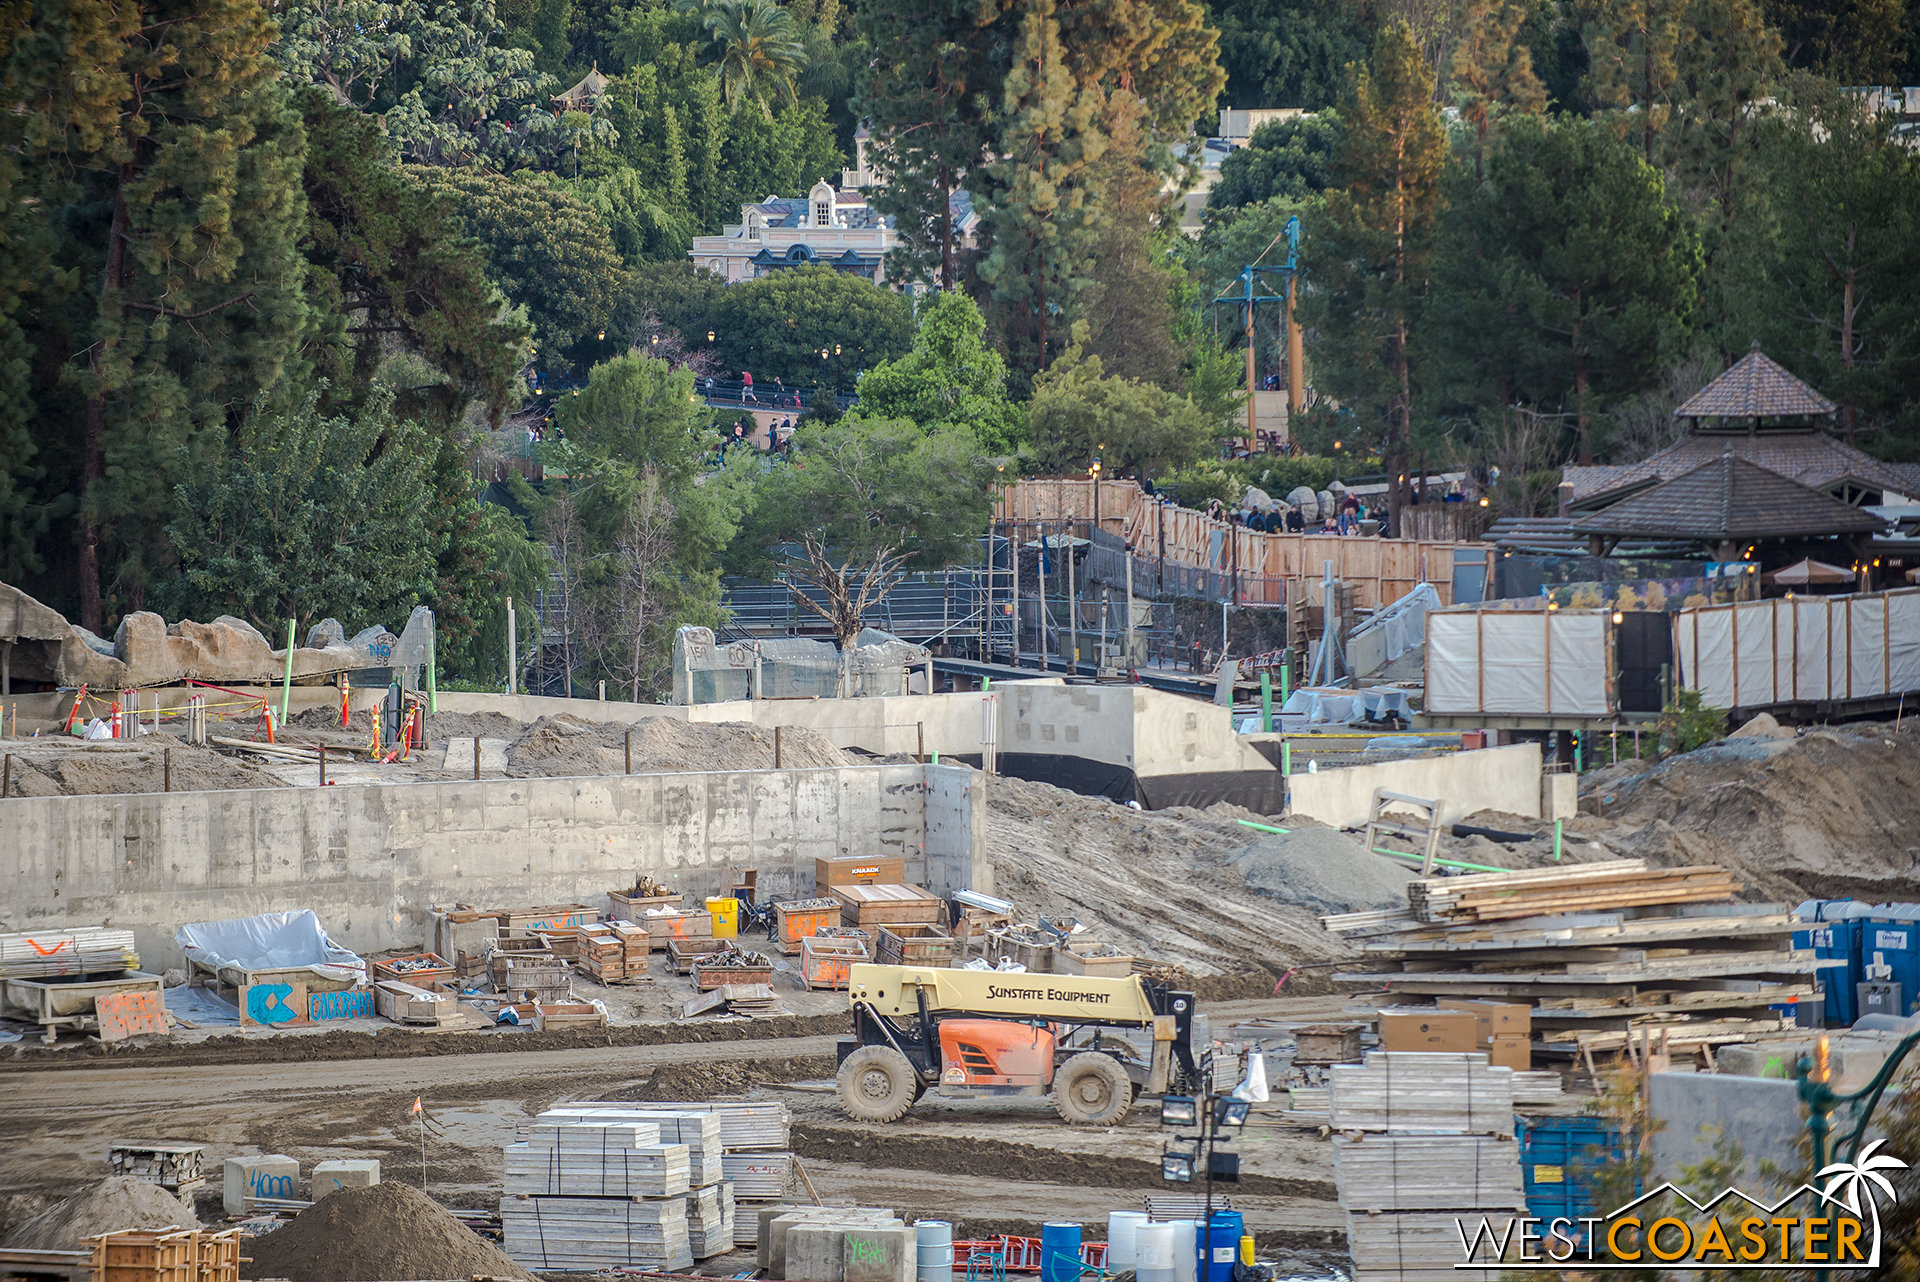 """There will be a tertiary access point into """"Star Wars"""" land from this area that tunnels right under Winnie the Pooh and includes a periscope point to look at the busts of Melvin, Buff, and Max."""